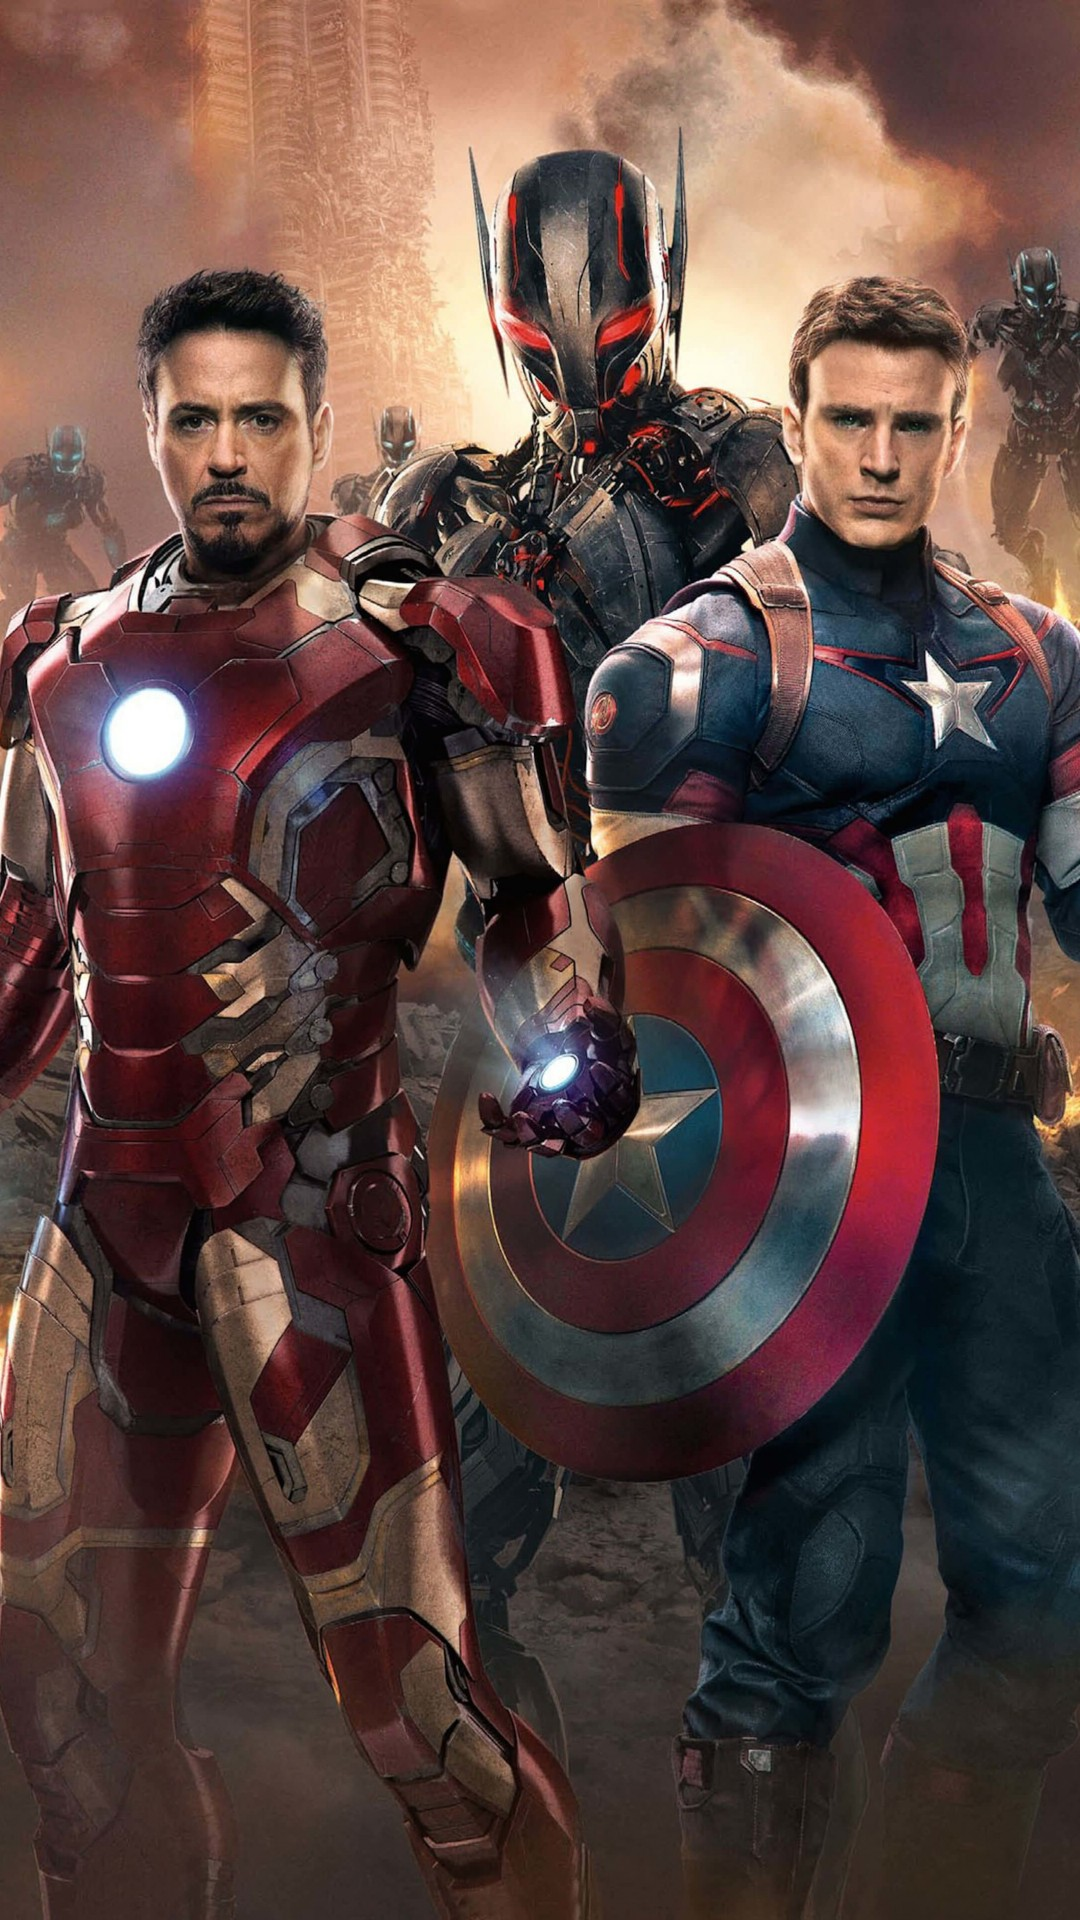 The Avengers: Age of Ultron - Iron Man and Captain America Wallpaper for SAMSUNG Galaxy S4